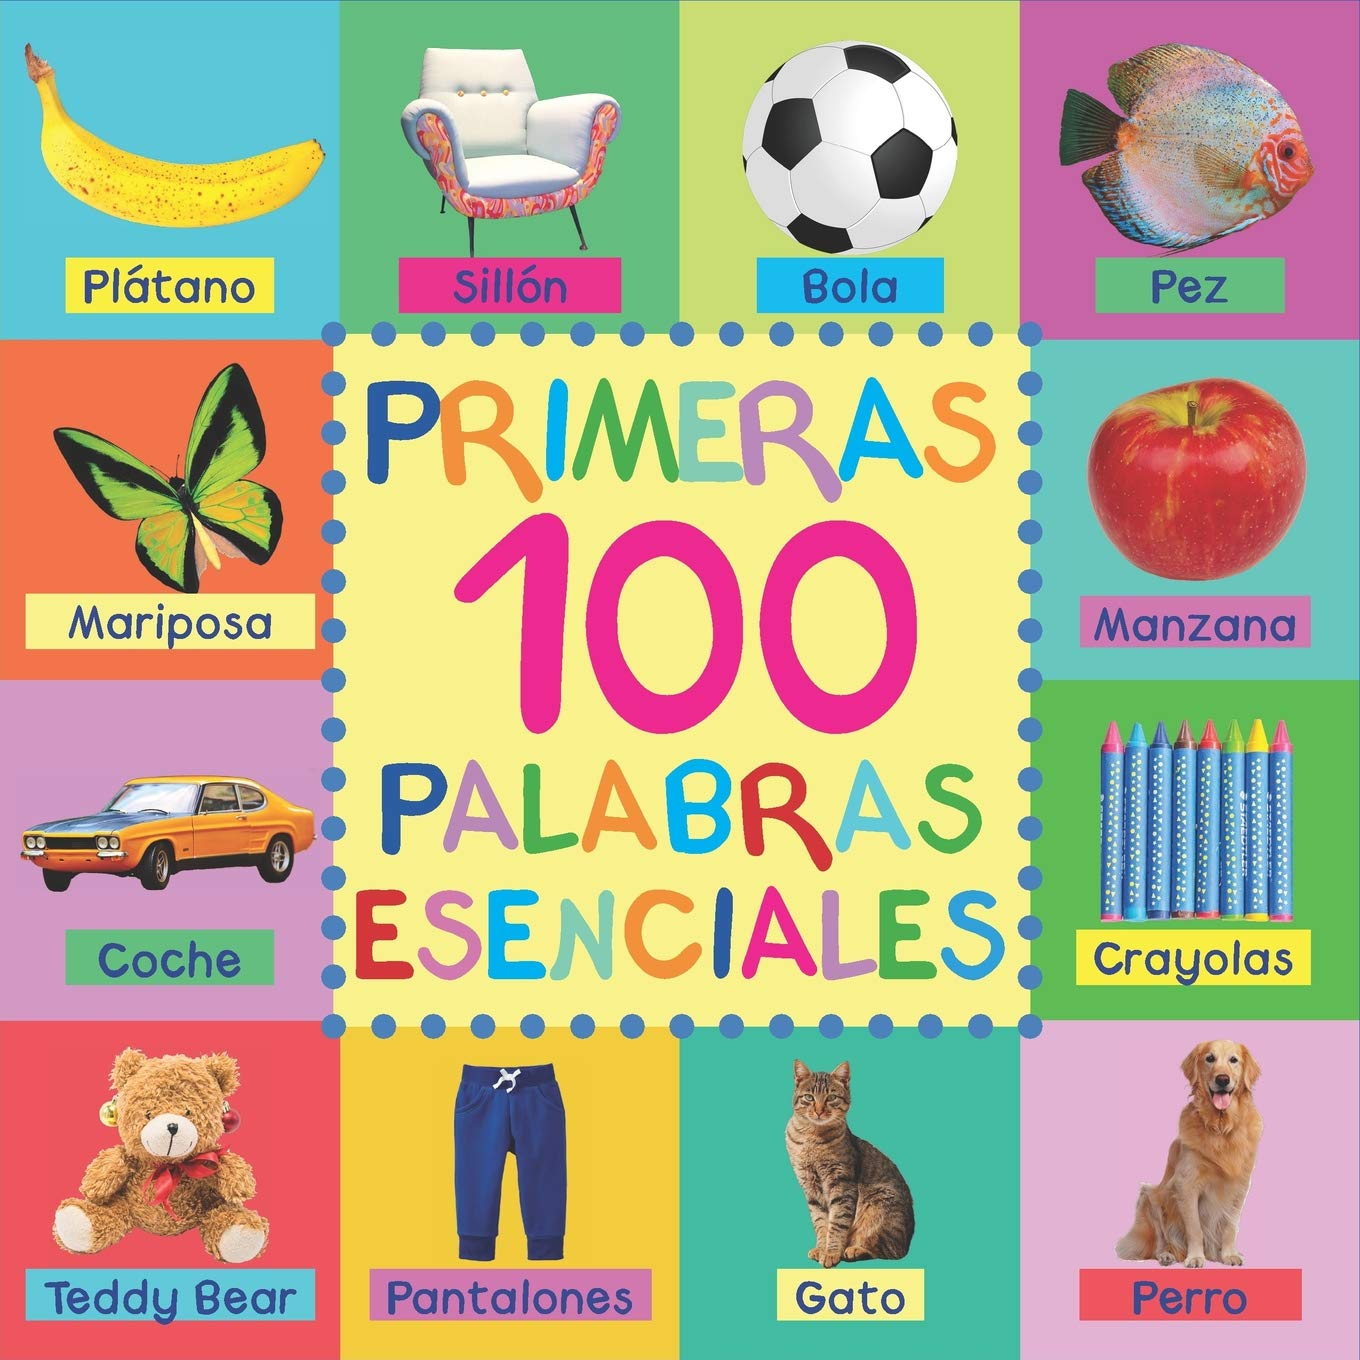 Primeras 100 Palabras Esenciales (Spanish Edition): Mary King: 9781723798856: Amazon.com: Books